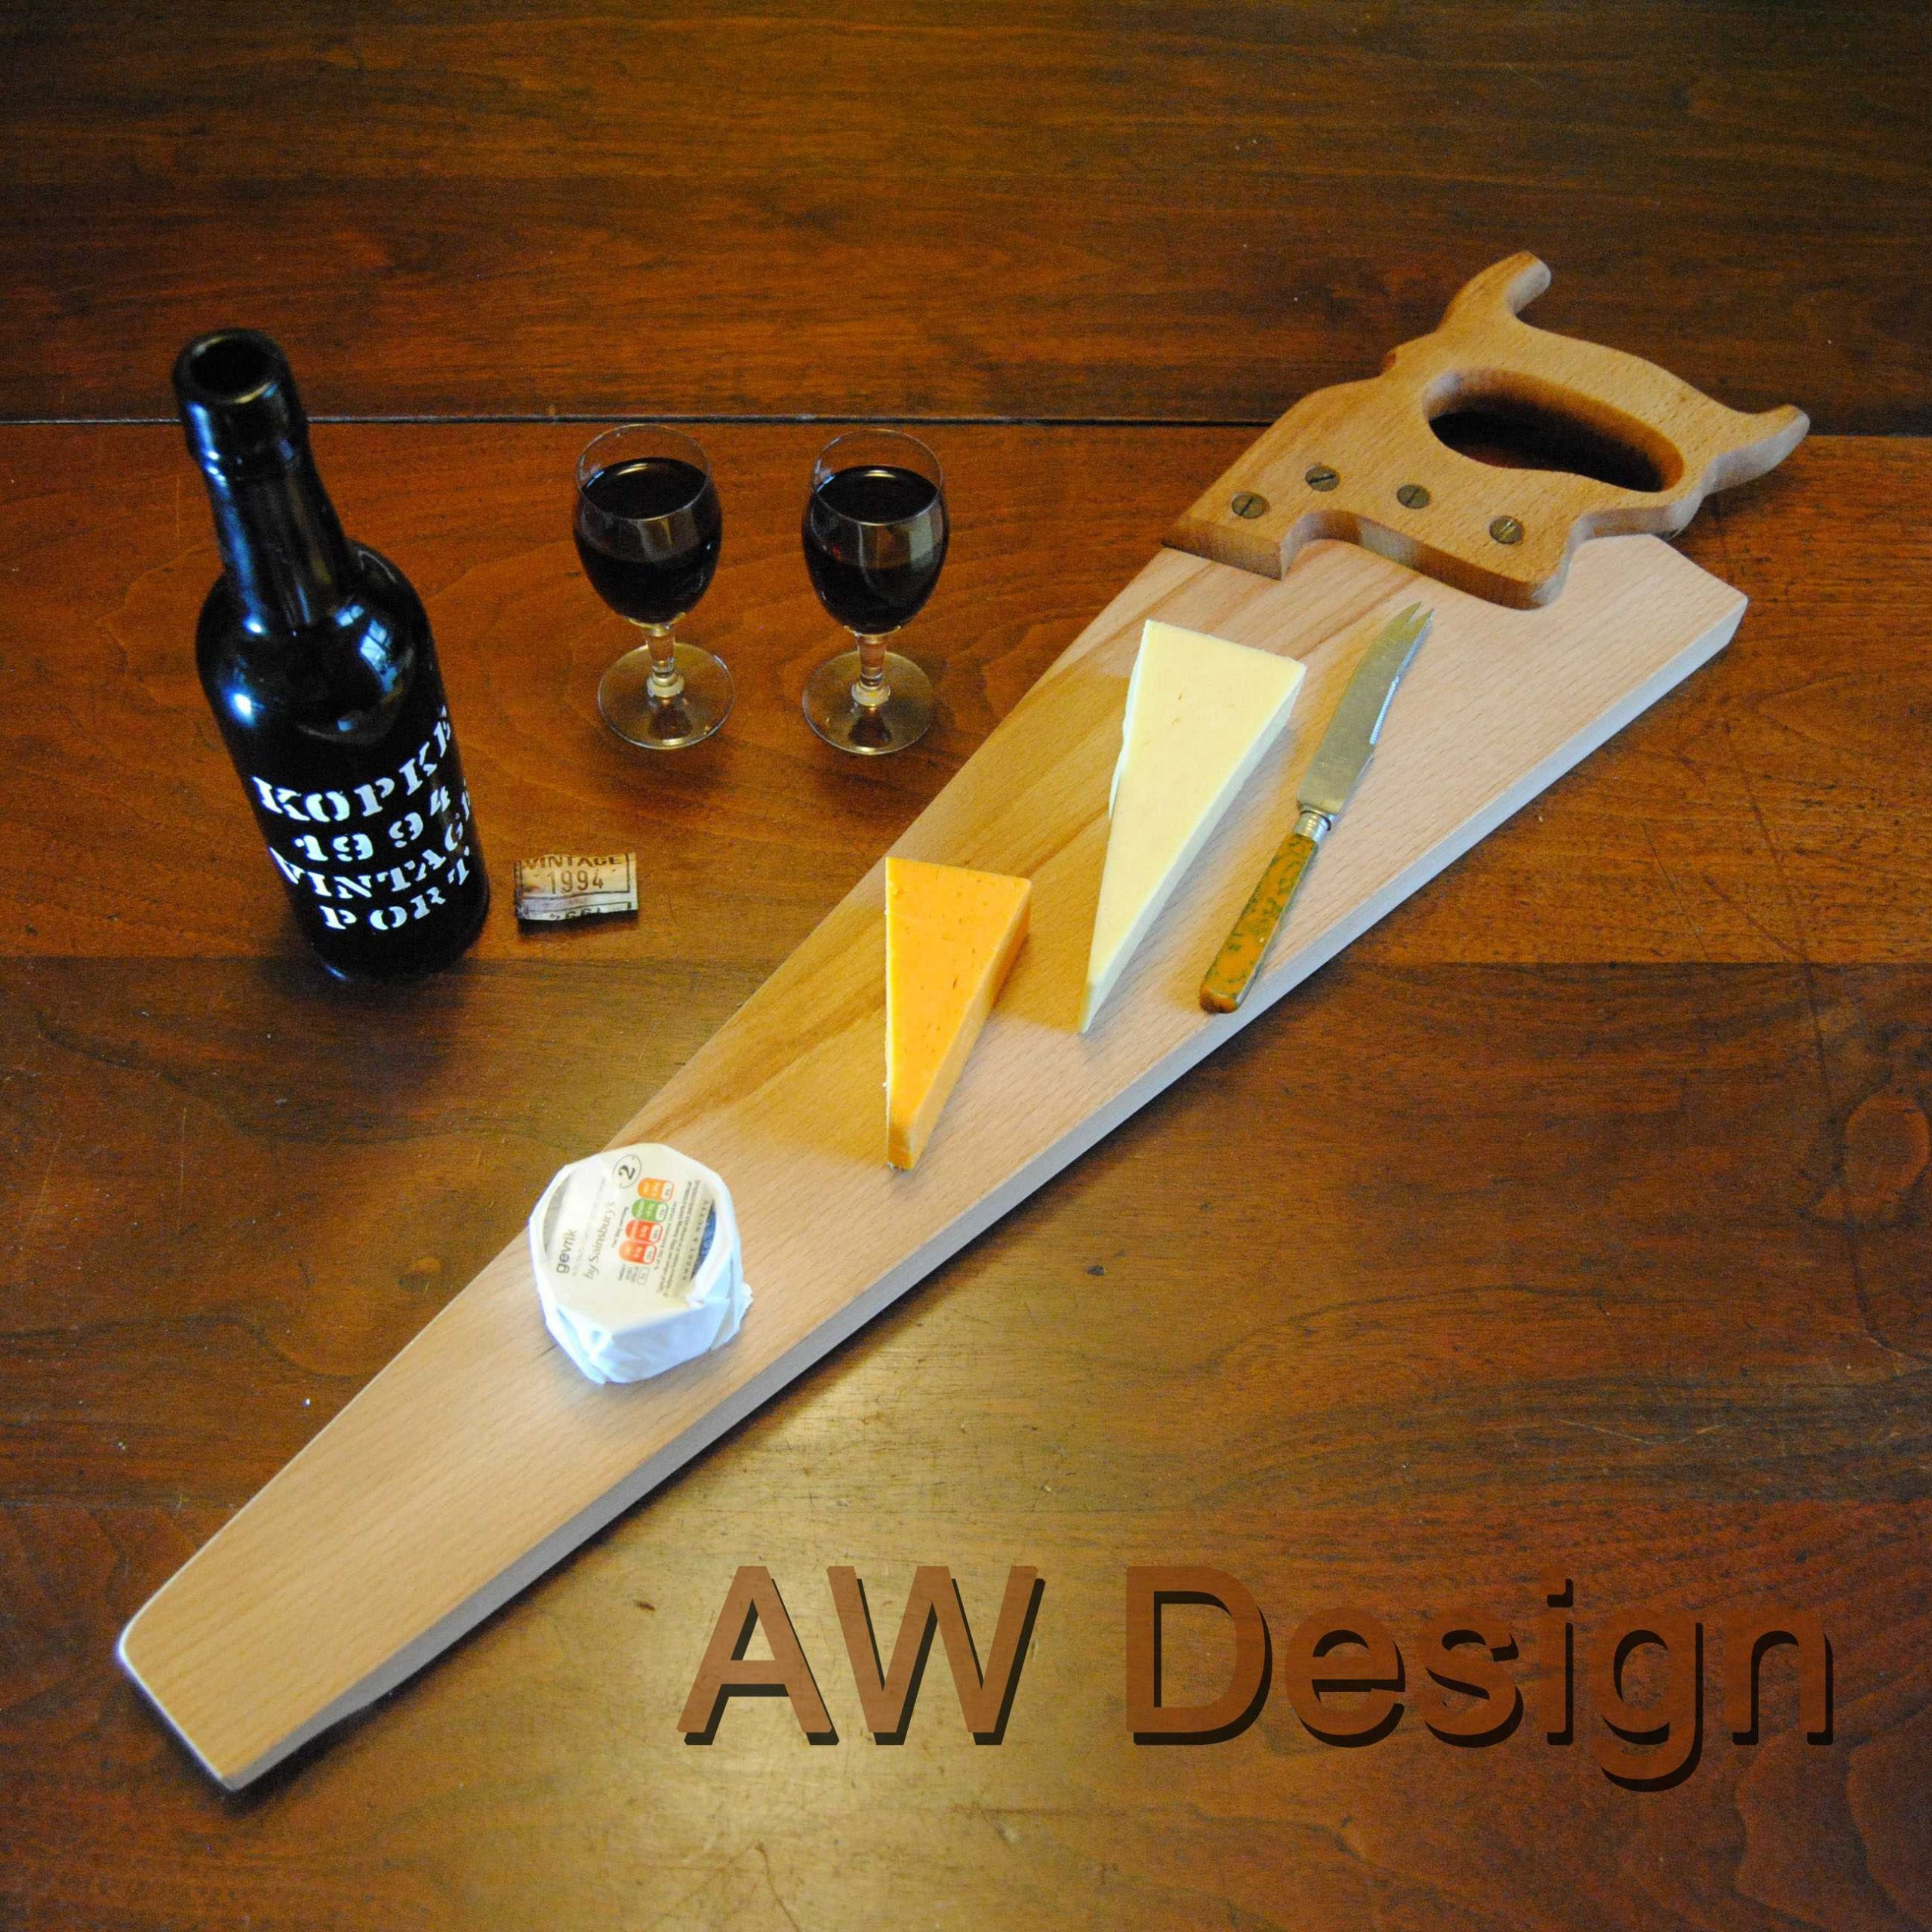 AW_Design_Upcycling_Handsaw_Upcycled_Cheeseboard